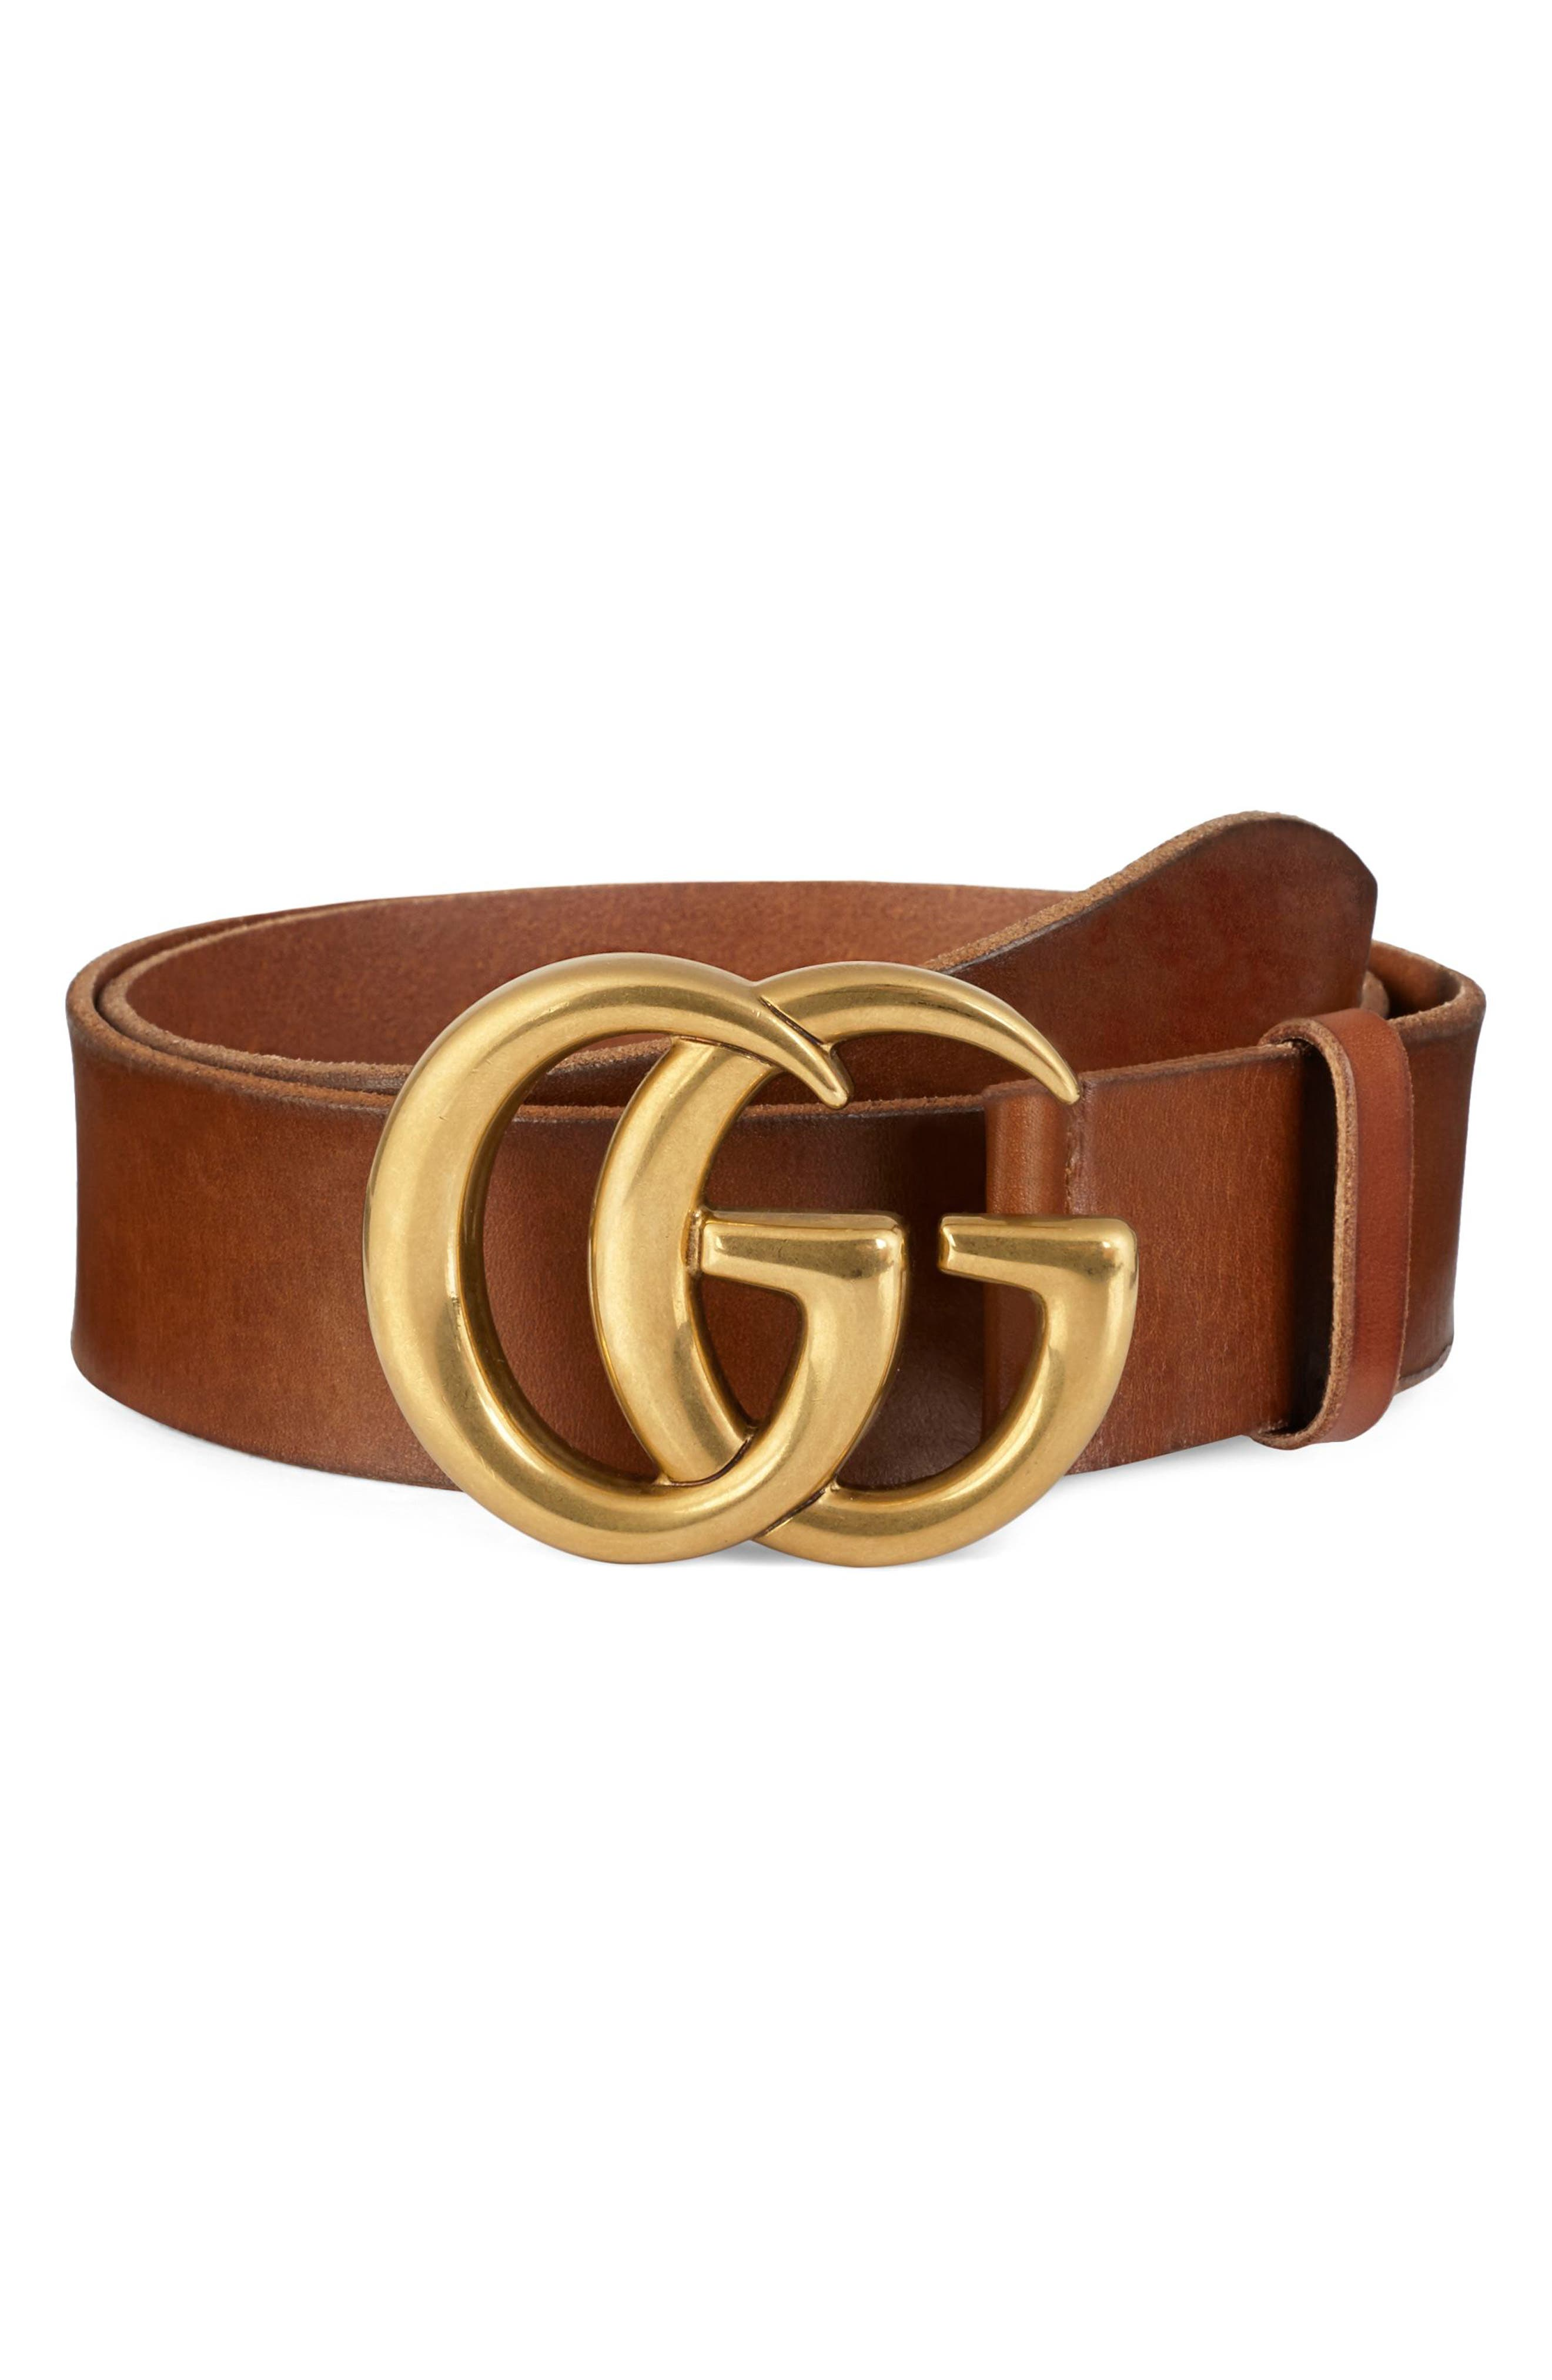 Running Gold Leather Belt,                         Main,                         color, Brown